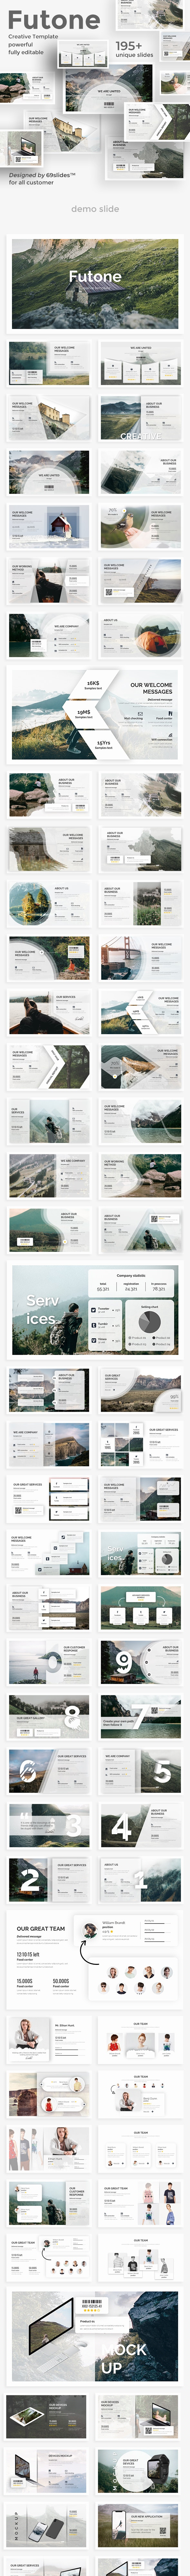 Futone Creative Design Powerpoint Template - Creative PowerPoint Templates